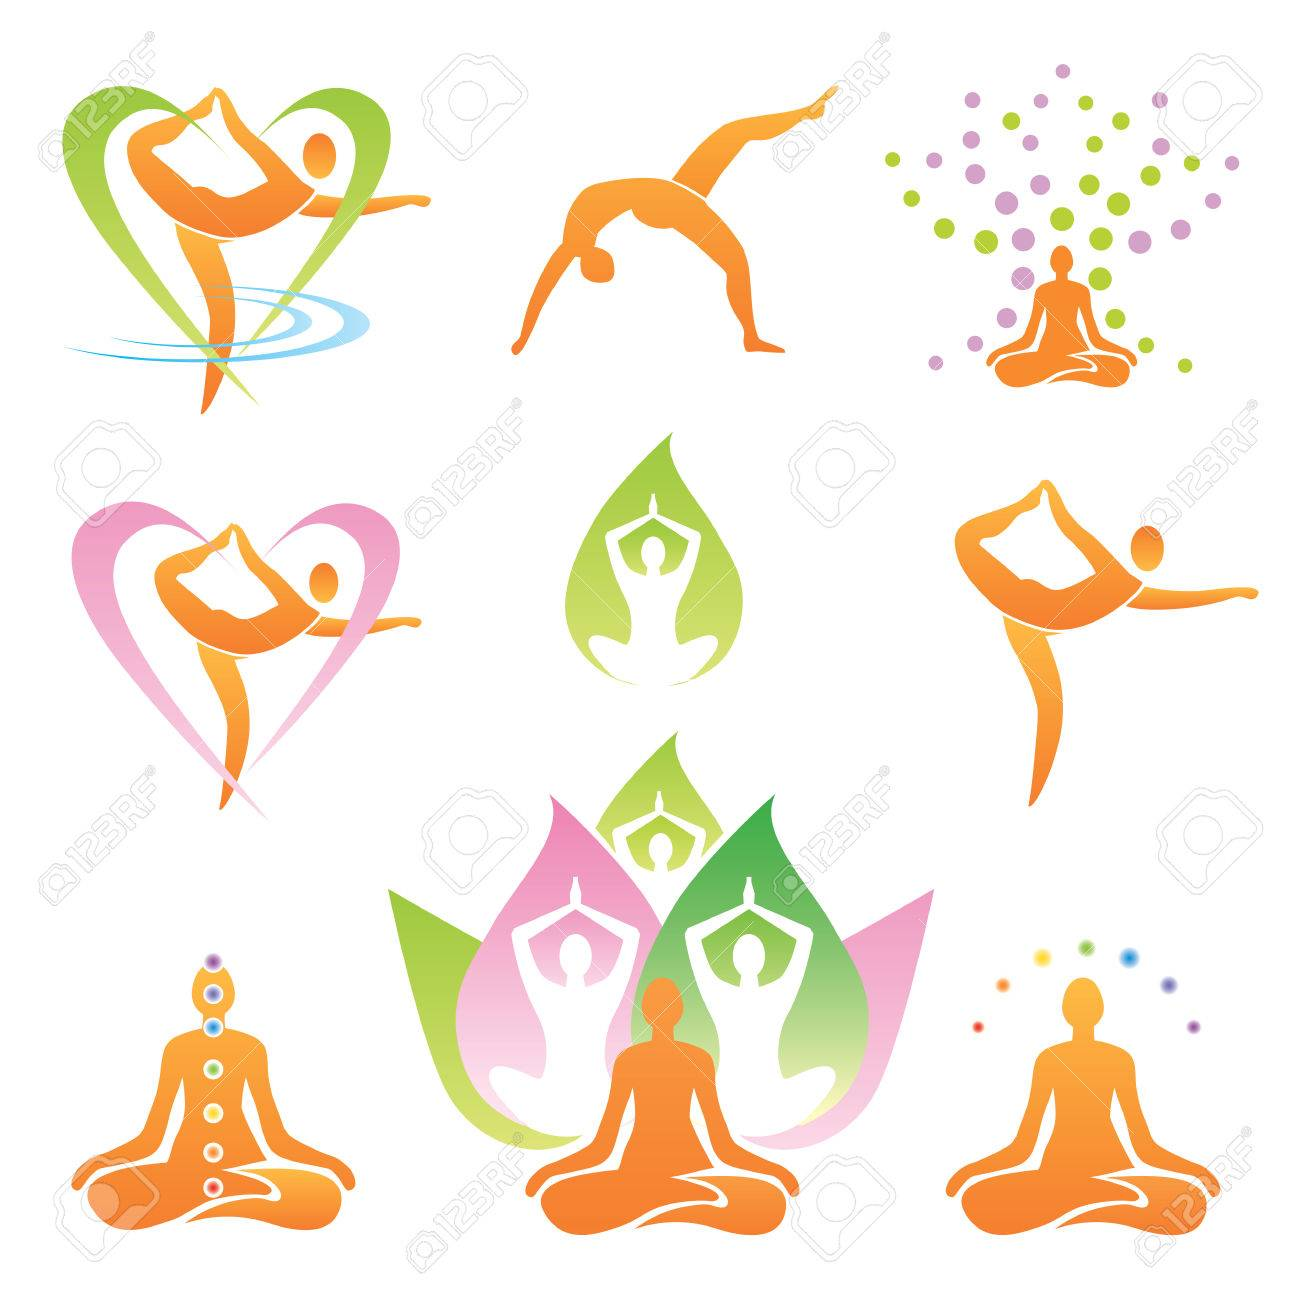 Icons of yoga positions, meditation  and symbols  Vector illustration Stock Vector - 23215620